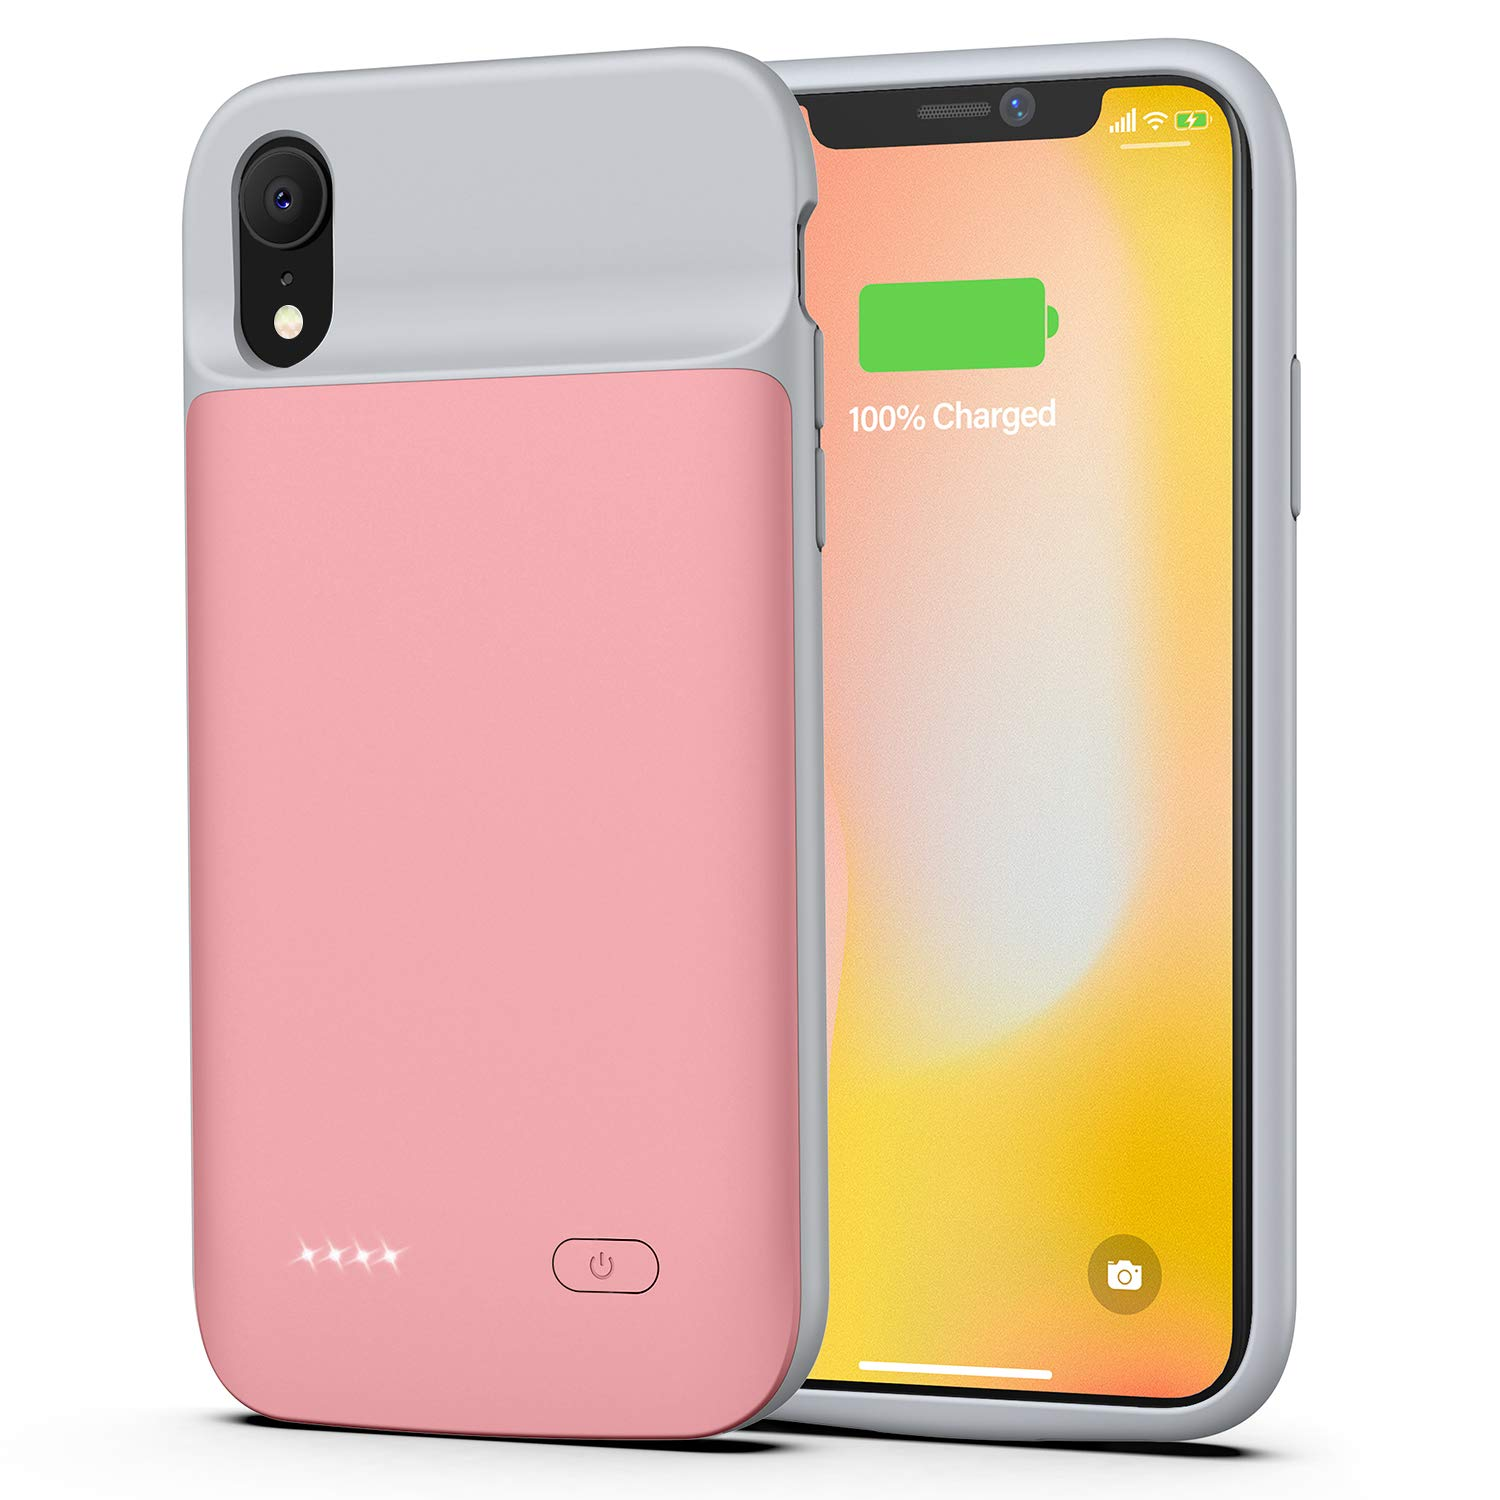 Lonlif Battery case for iPhone XR, 5000mAh Charging Case Rechargeable Charger Case for iPhone XR (Rose Gold)